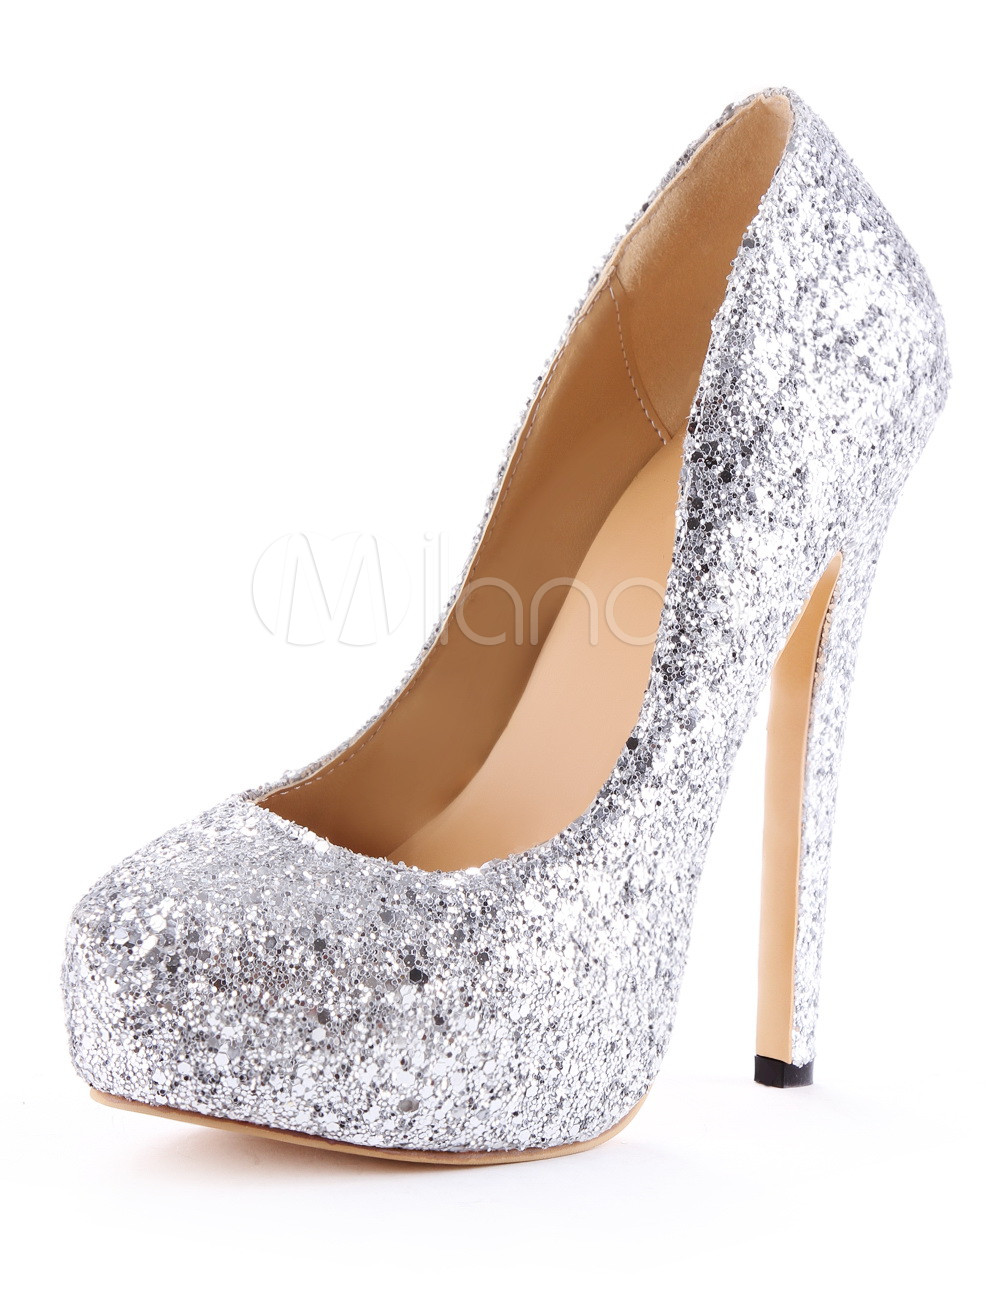 Silver Spike Heel Glitter Faux Leather High Heels For Woman